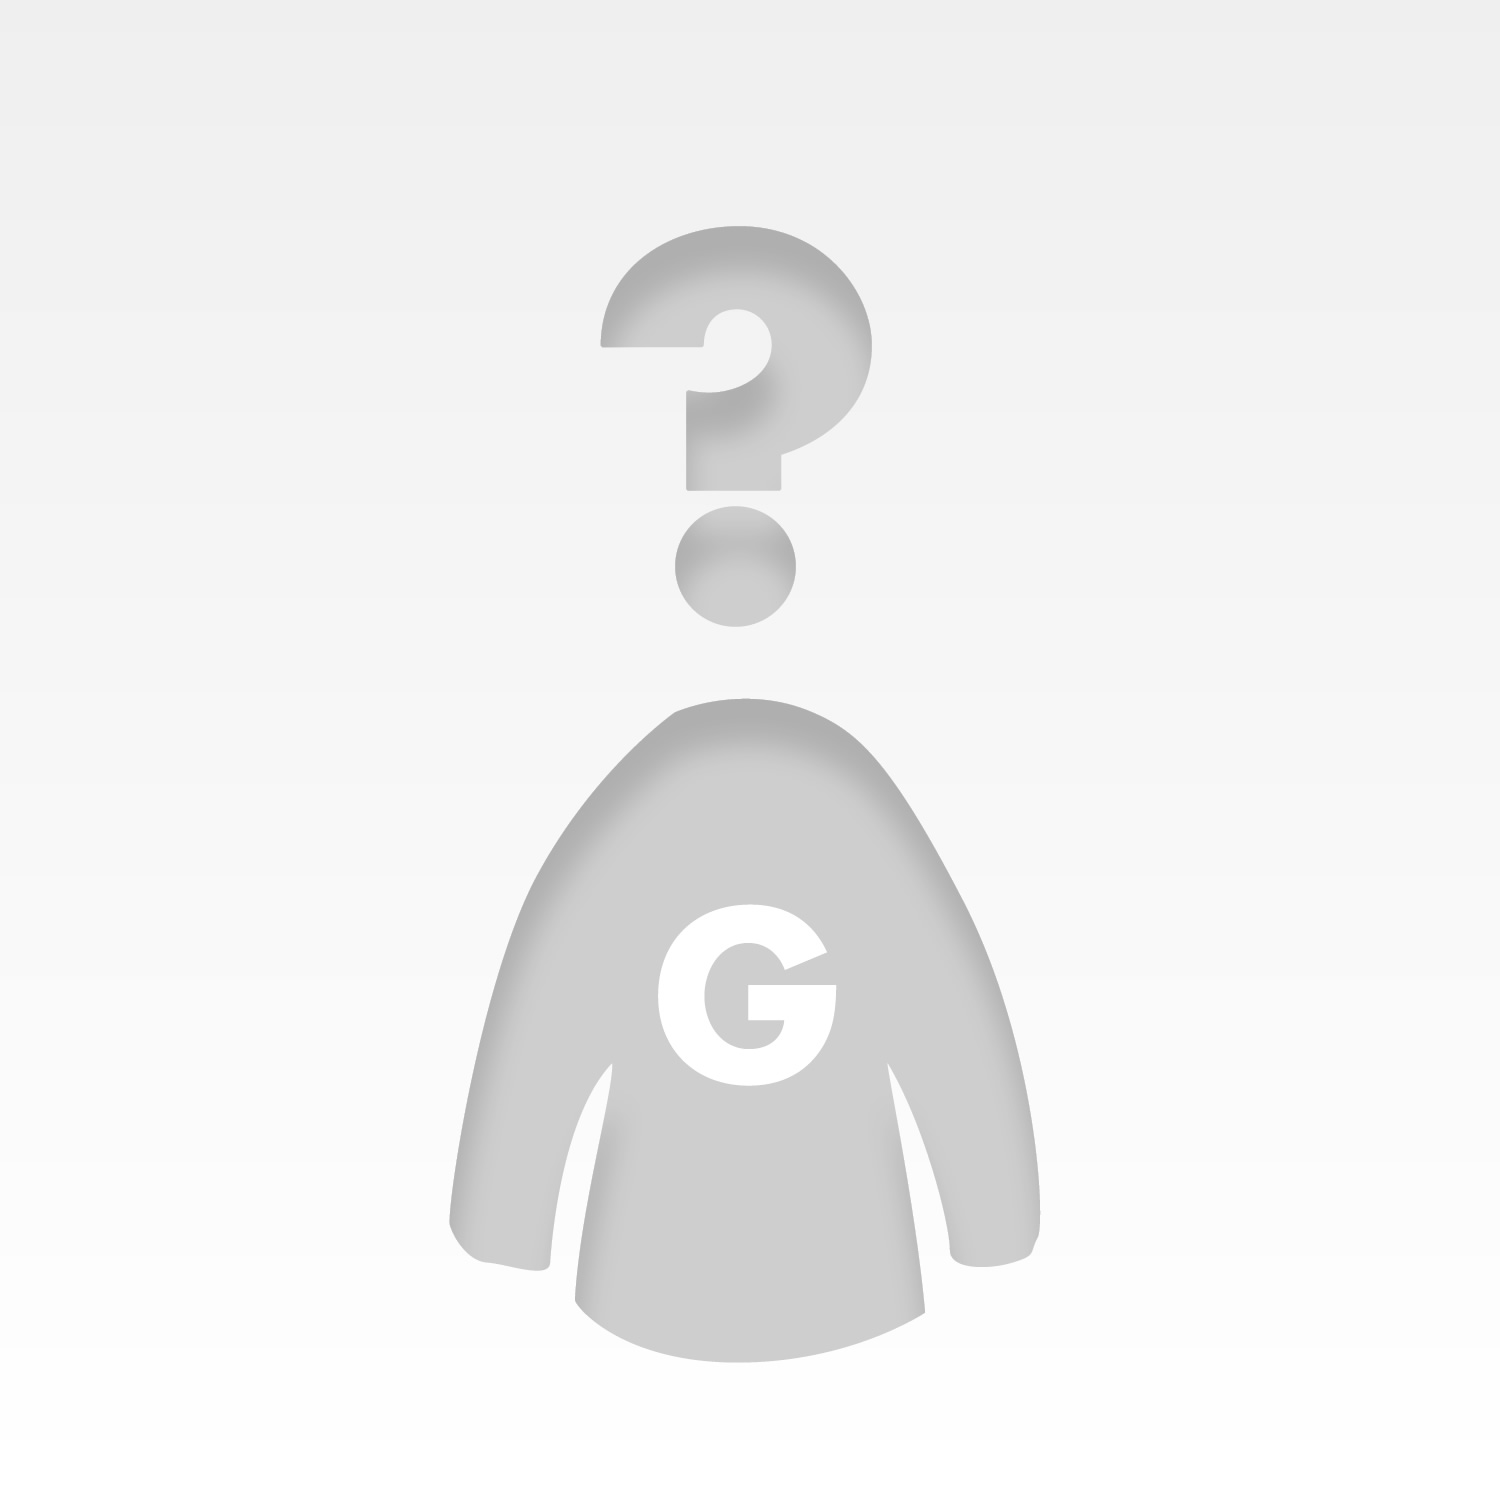 The s4ghdf2's avatar